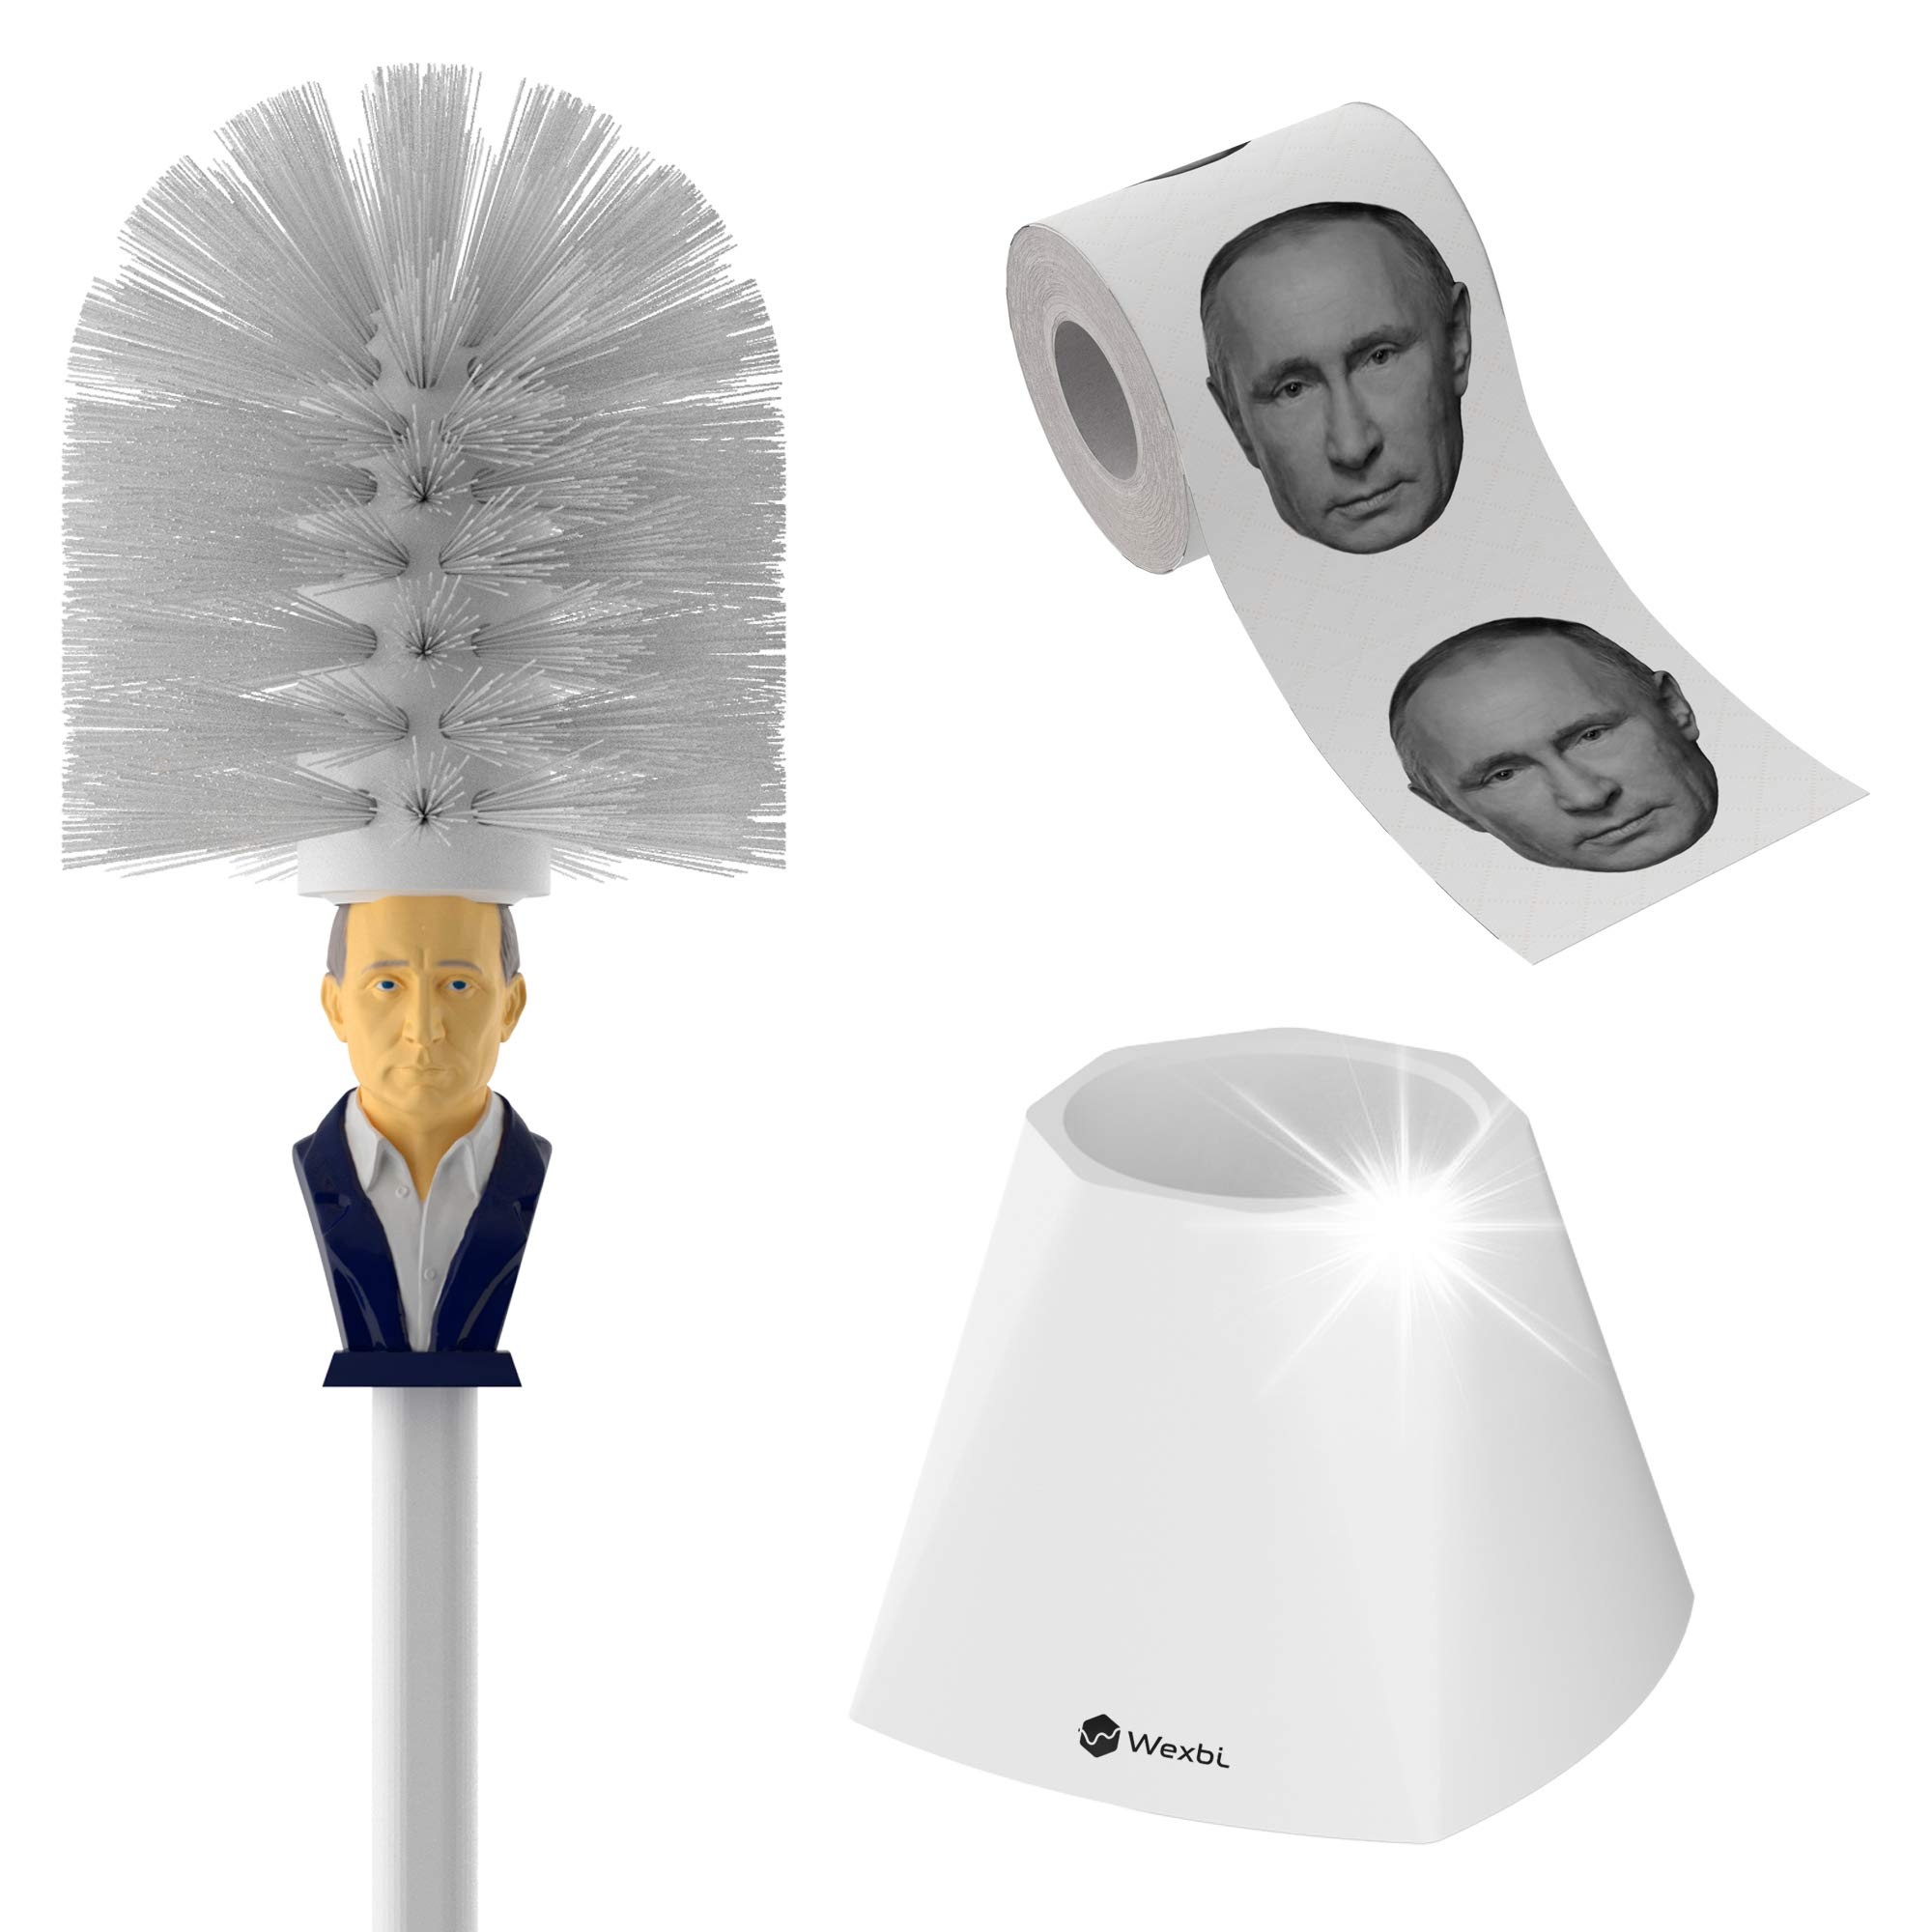 Putin Toilet Brush and Putin Toilet Paper - Hilarious Toilet Bowl Cleaner with Holder and Roll of Wipes with Russian President Vladimir Putin\'s Face - Funny Political Gag Novelty Bathroom Decor